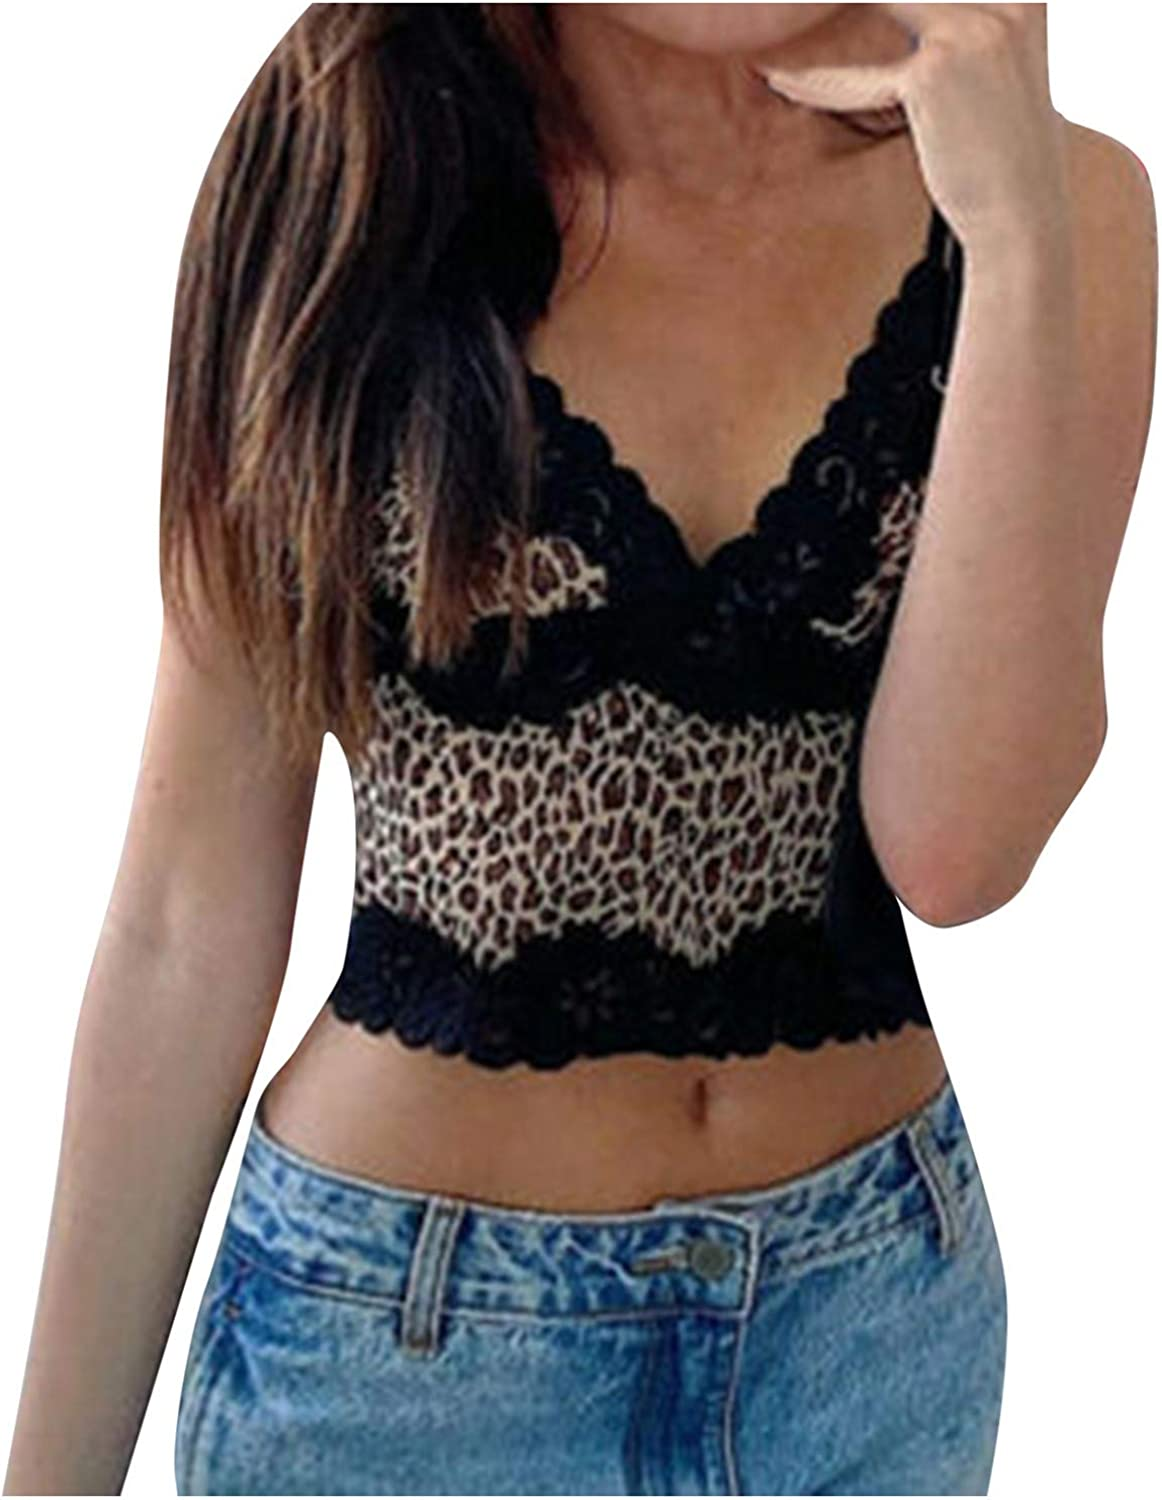 Cami Tops for Women Sexy Leopard Print V Neck Camisole Y2K Fashion Lace Sleeveless Crop Tank Top